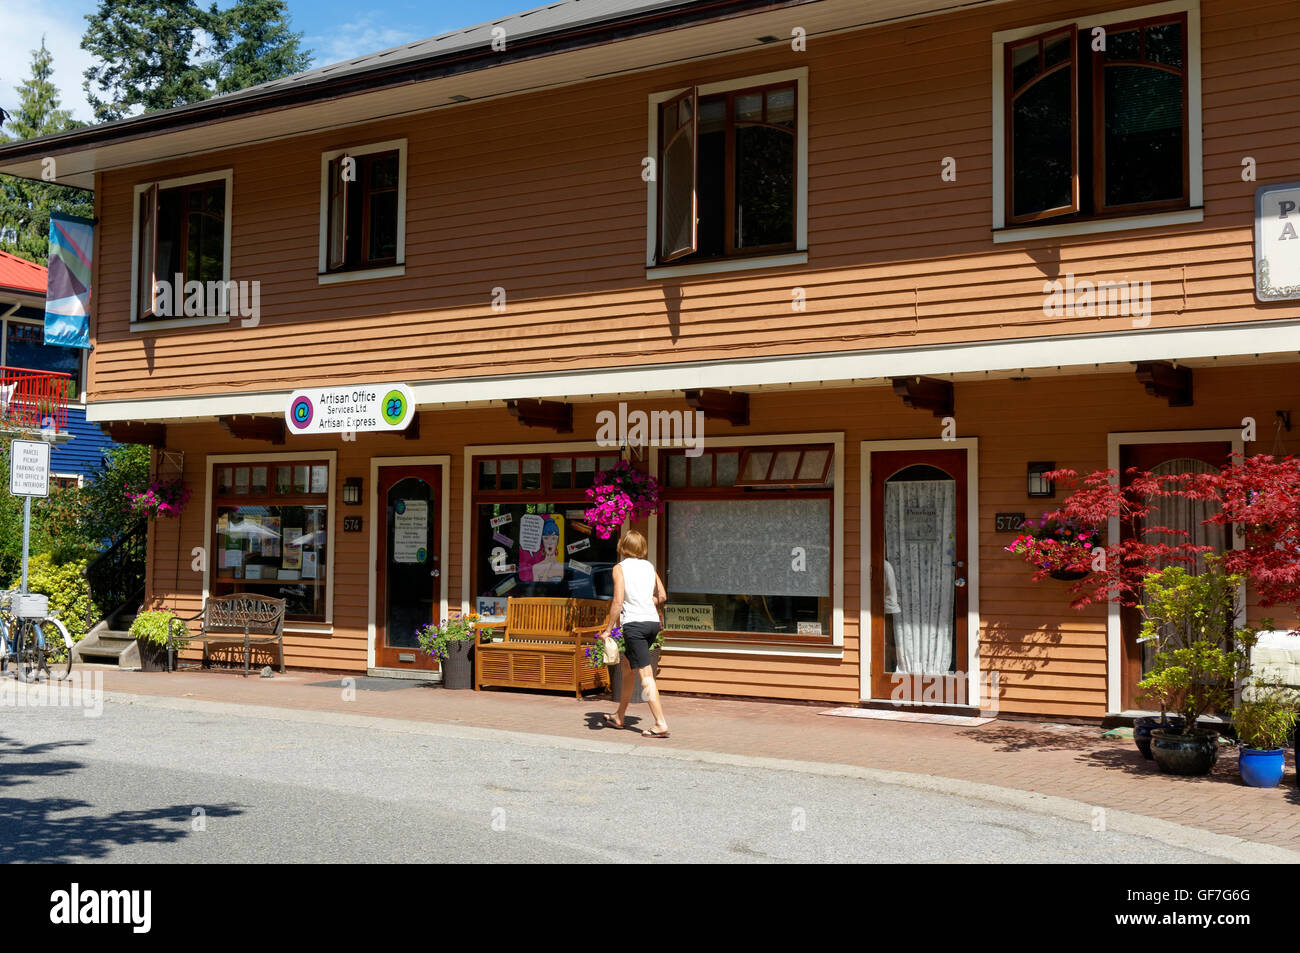 Woman walking by a colorful wooden building at Artisan Square on Bowen island, British Columbia, Canada - Stock Image